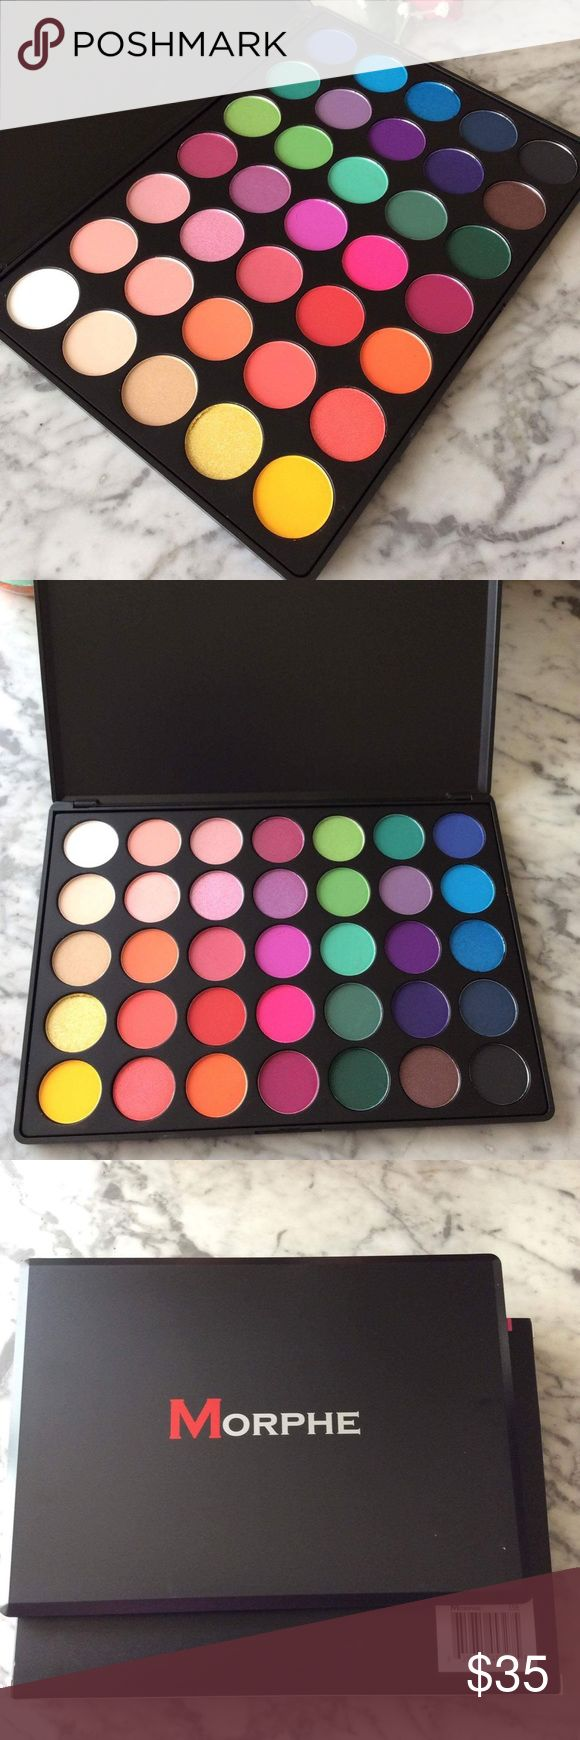 Morphe 35B The Glam palette Brand new in box. Never swatch and authentic. These eye shadows are highly pigmented and the color pay off is well worth this investment. This 35 color glam palette consists of wild and bright colors perfect for someone who LOVES color! A variety of shades in yellows, orange, pink, purple, blue, green, red and black.  This Palette is a mixture of 12 Shimmer and 23 Matte Colors. Makeup Eyeshadow